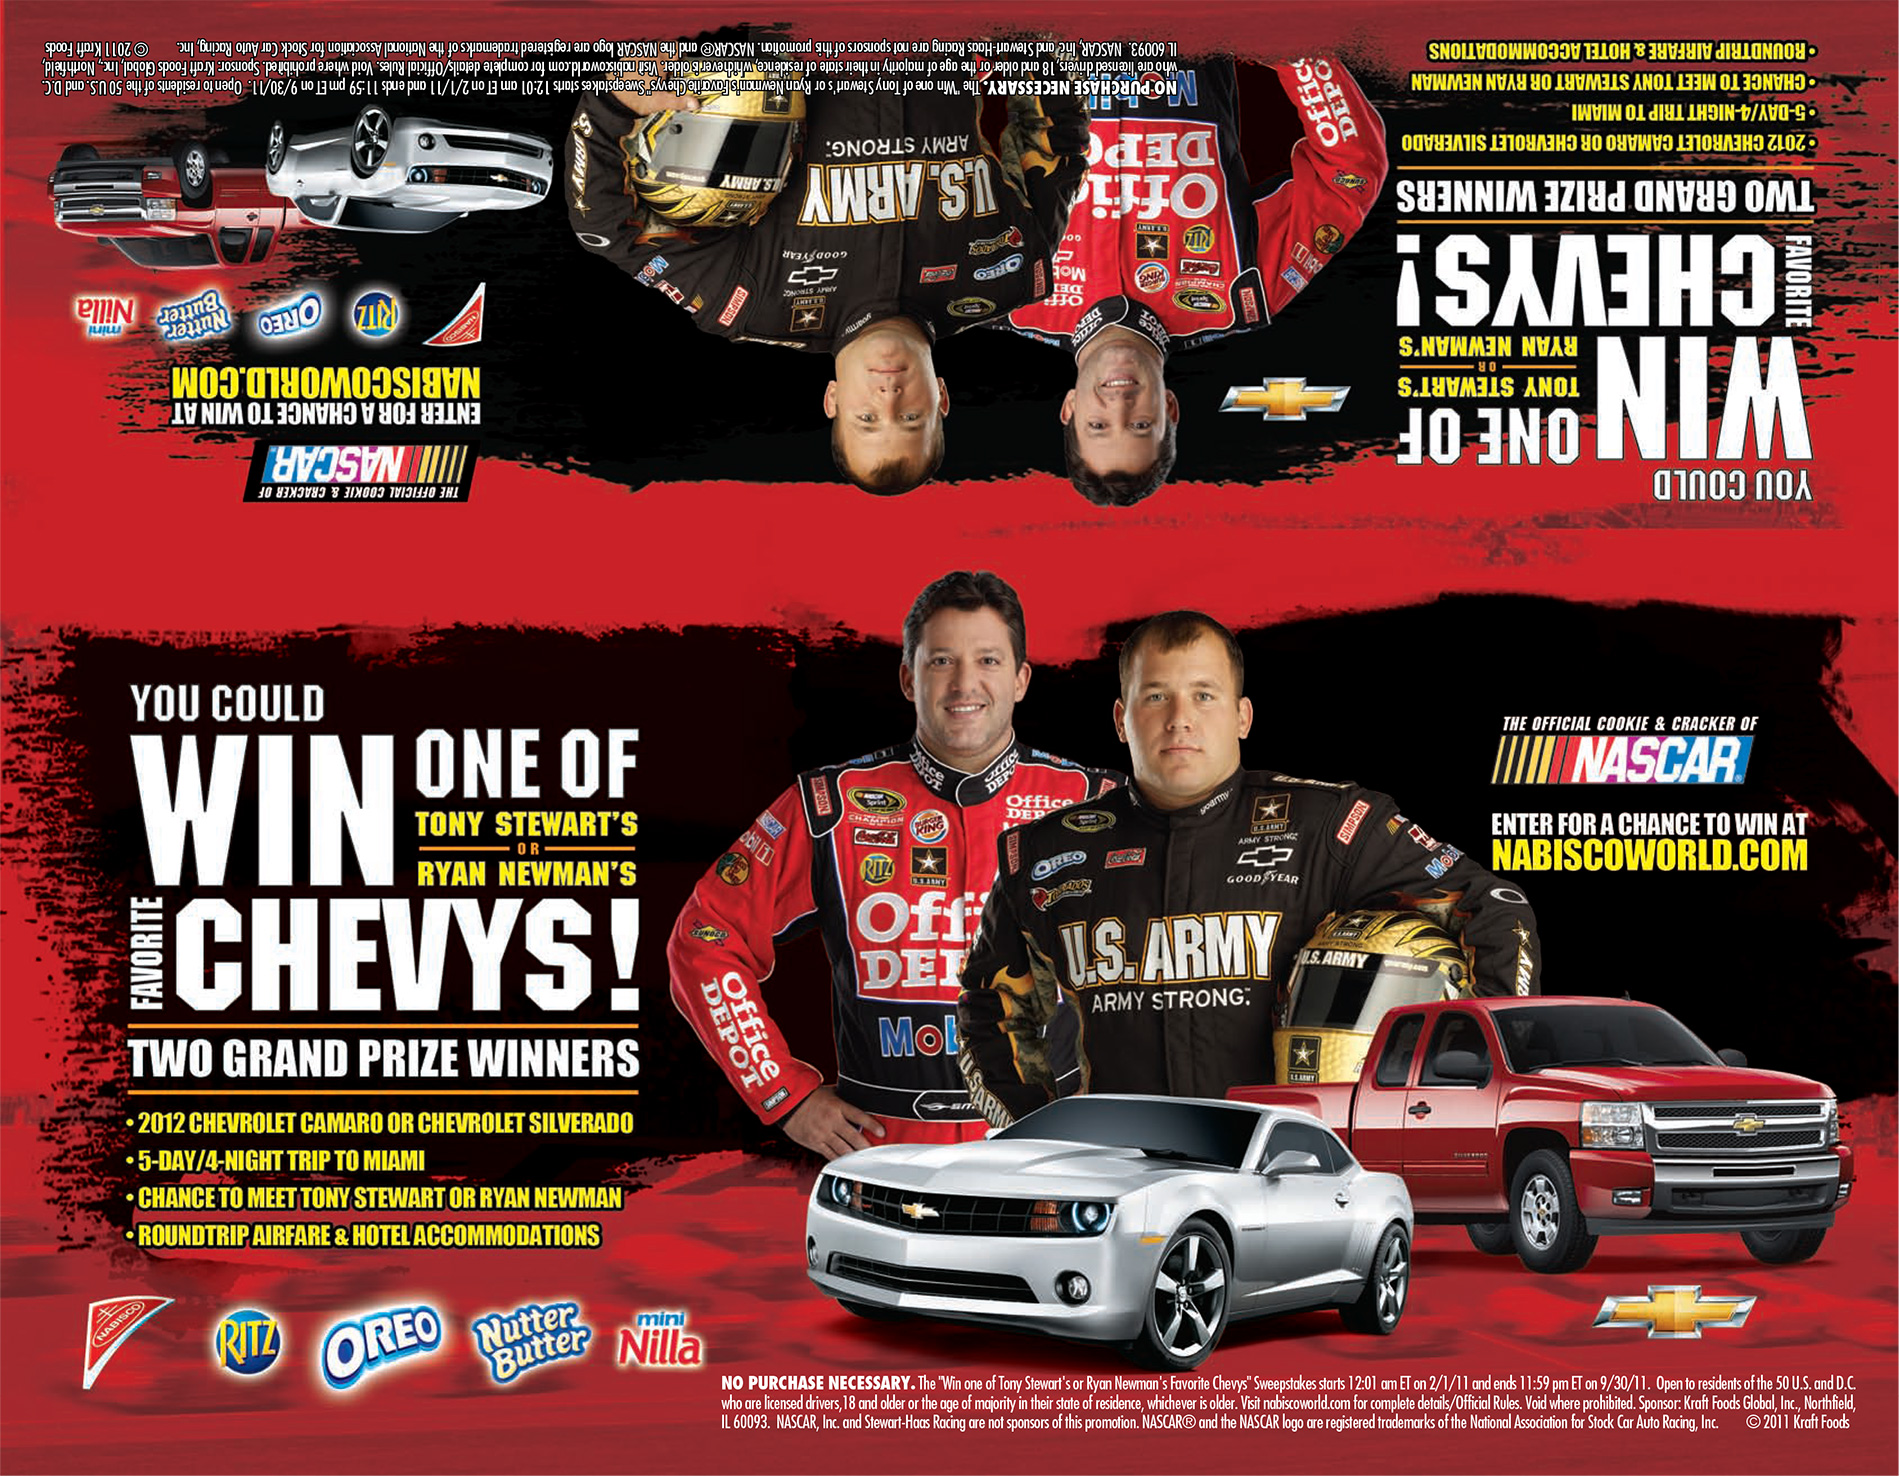 Nabisco-&-Chevrolet-Co-Marketing-Promotion